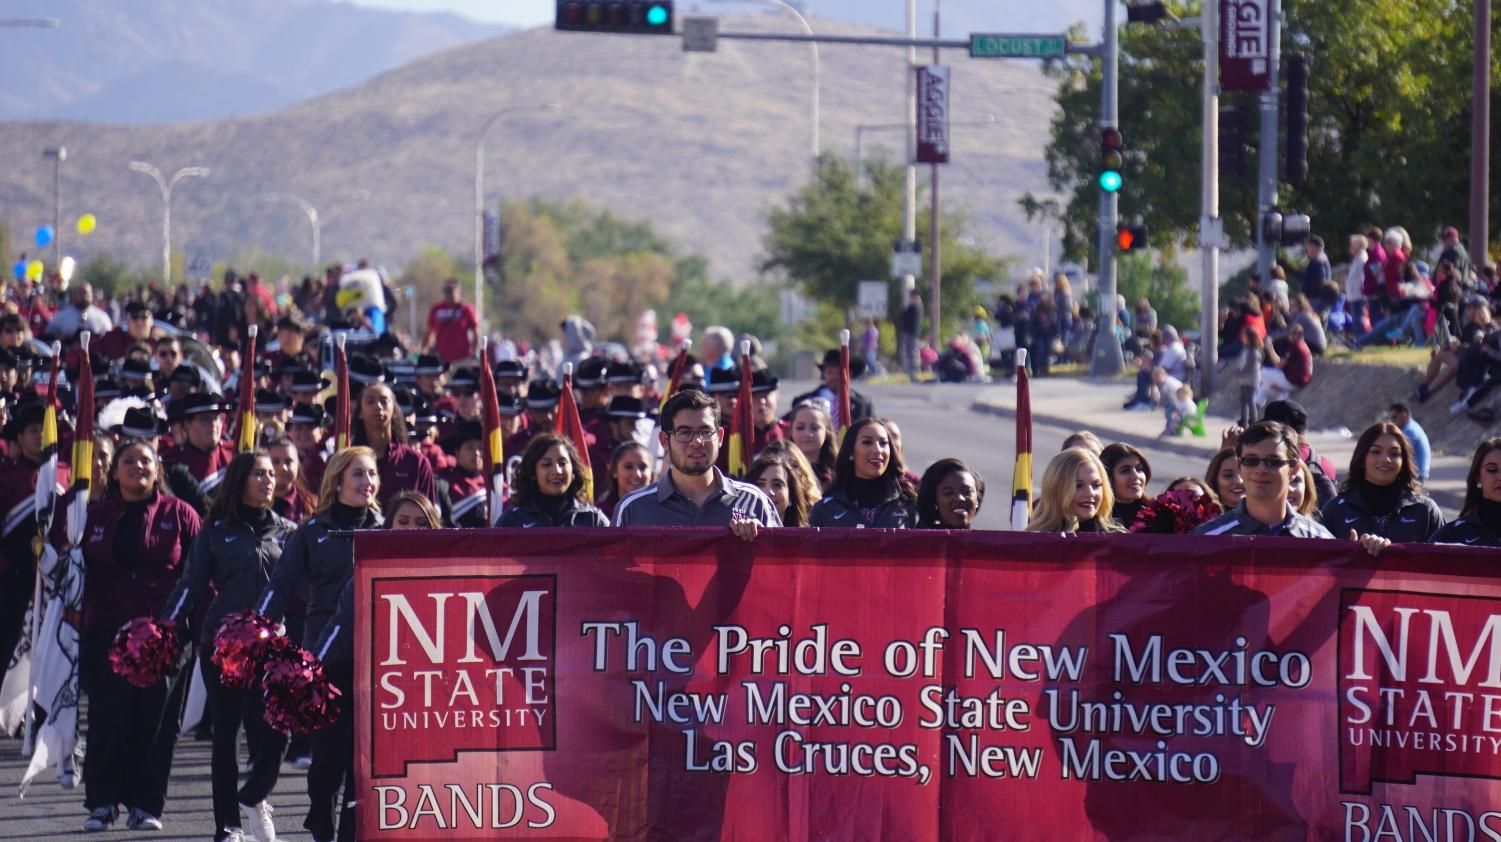 The bands of NMSU entered the parade strong.